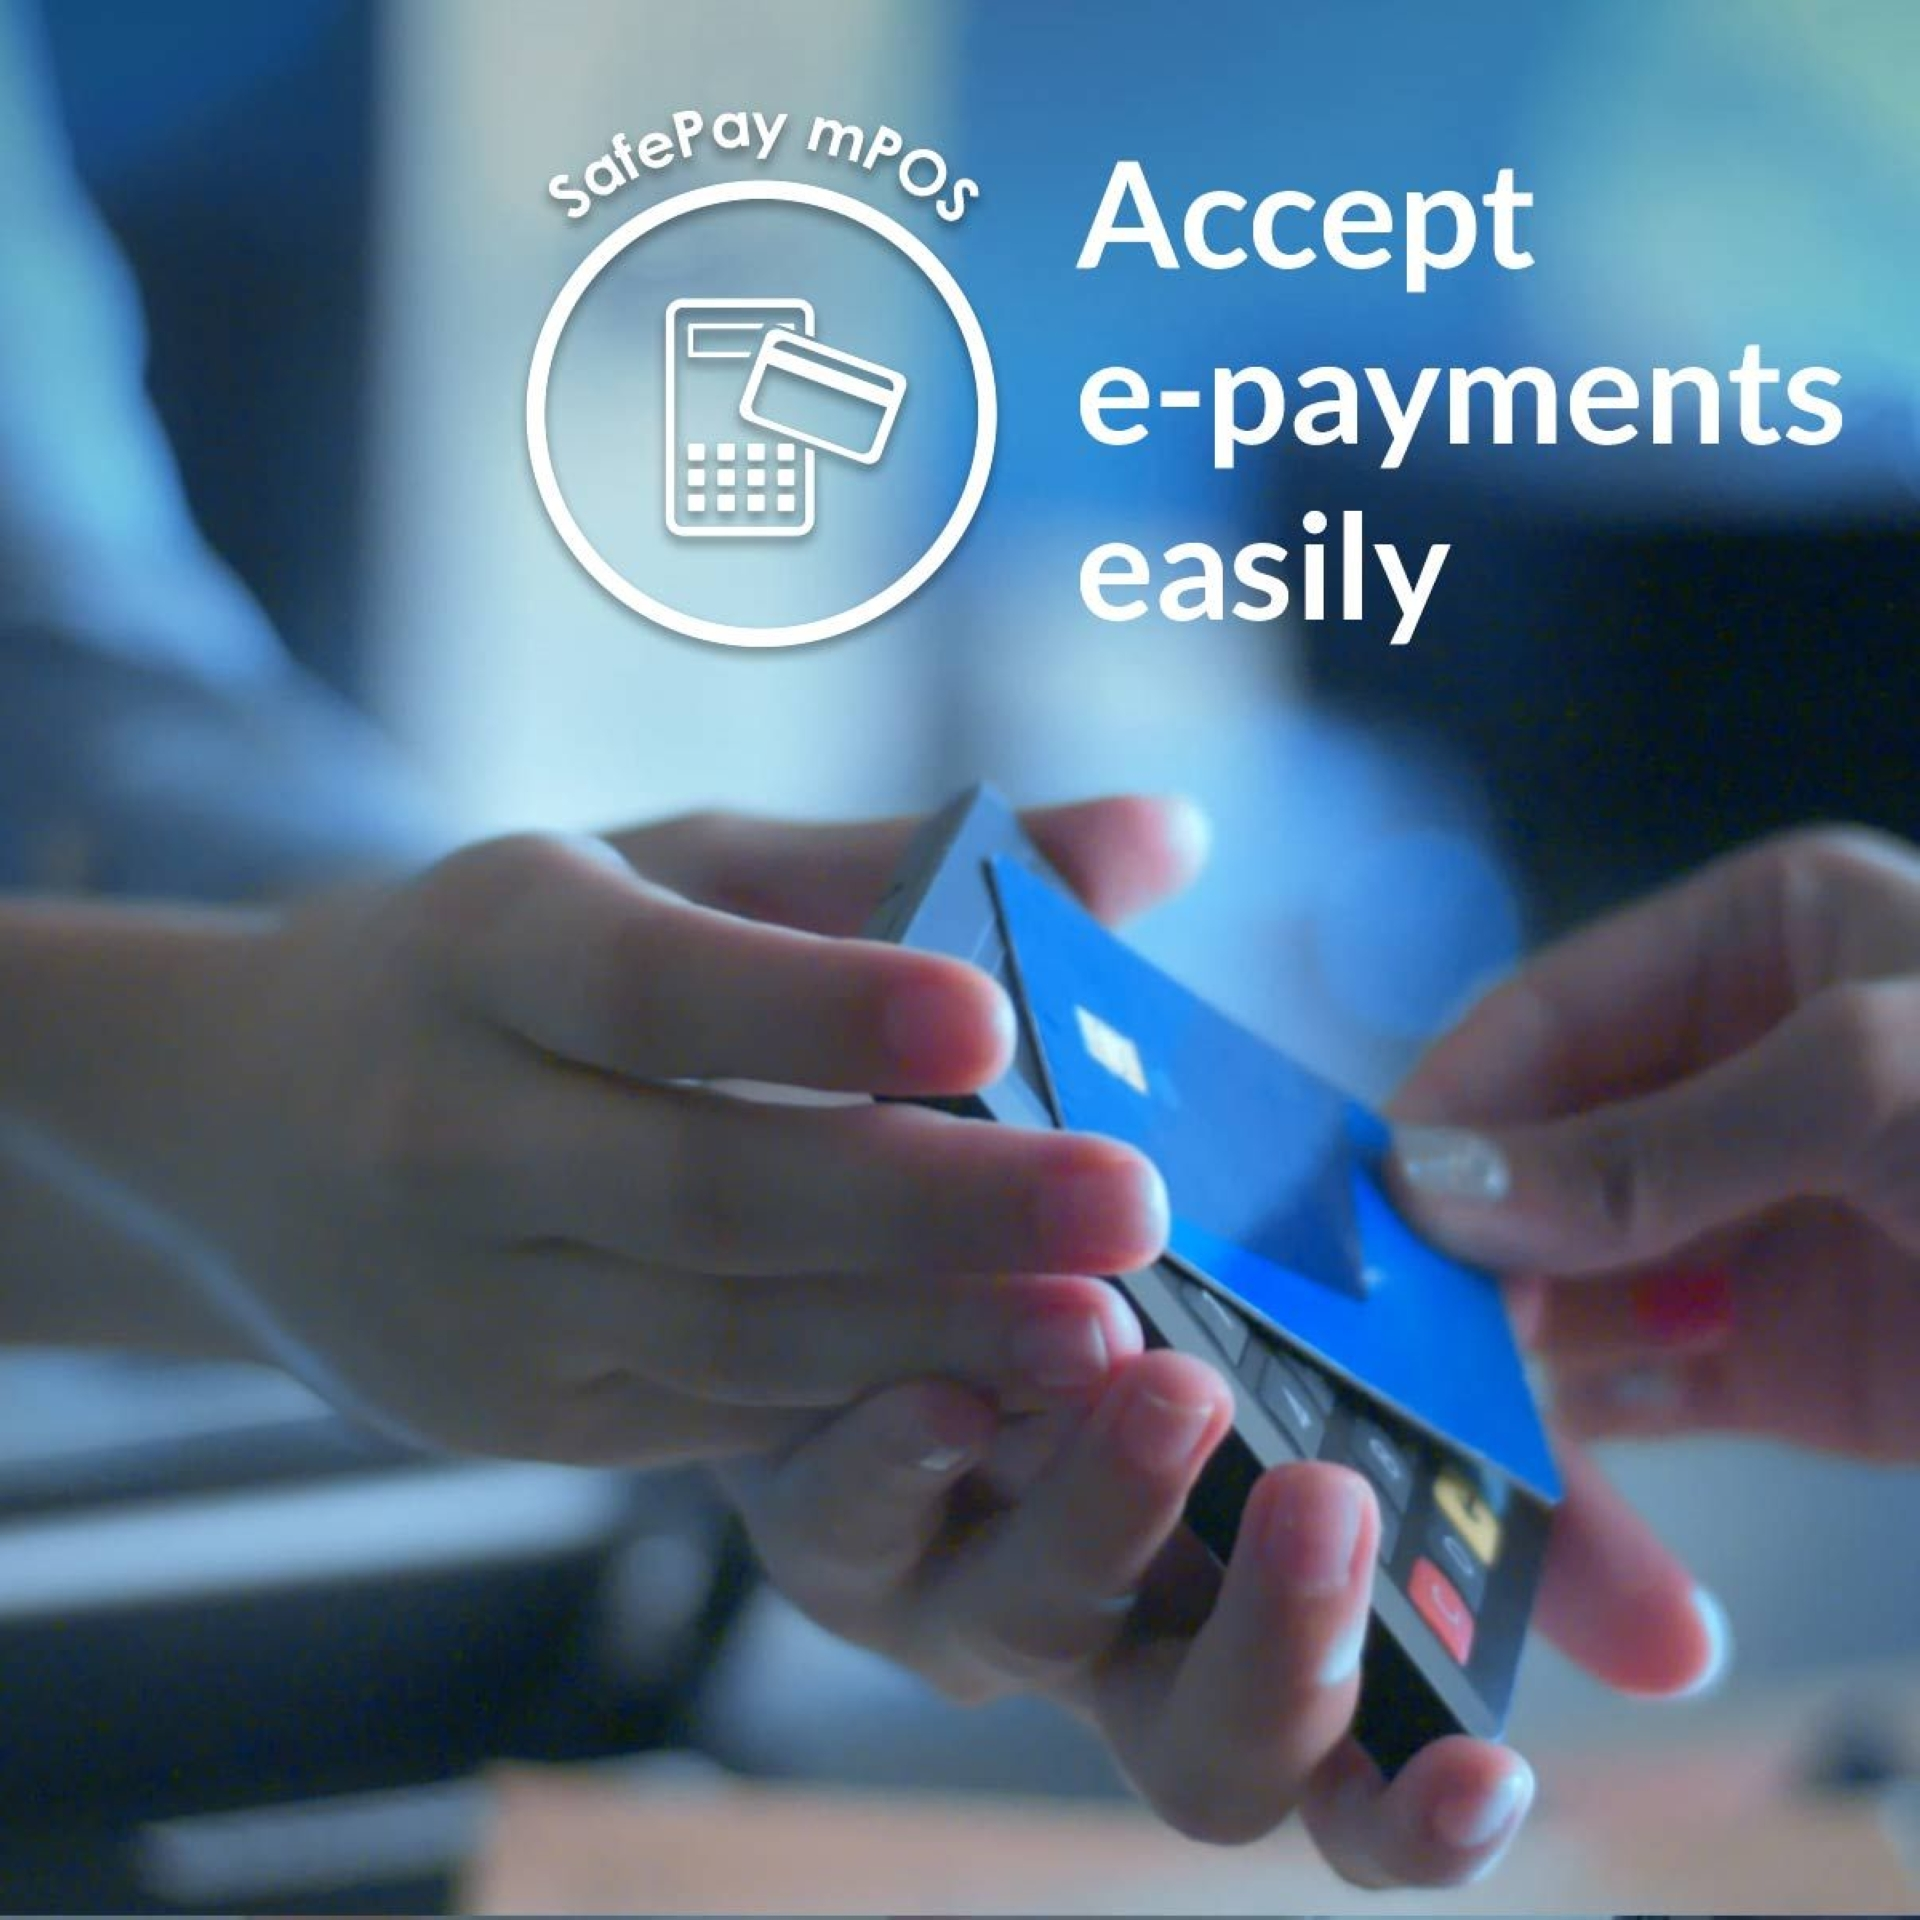 Celcom's SafePaymPOS is the mobile point-of-sale (POS) that offers your business an affordable, yet secure, way to manage electronic card payments.